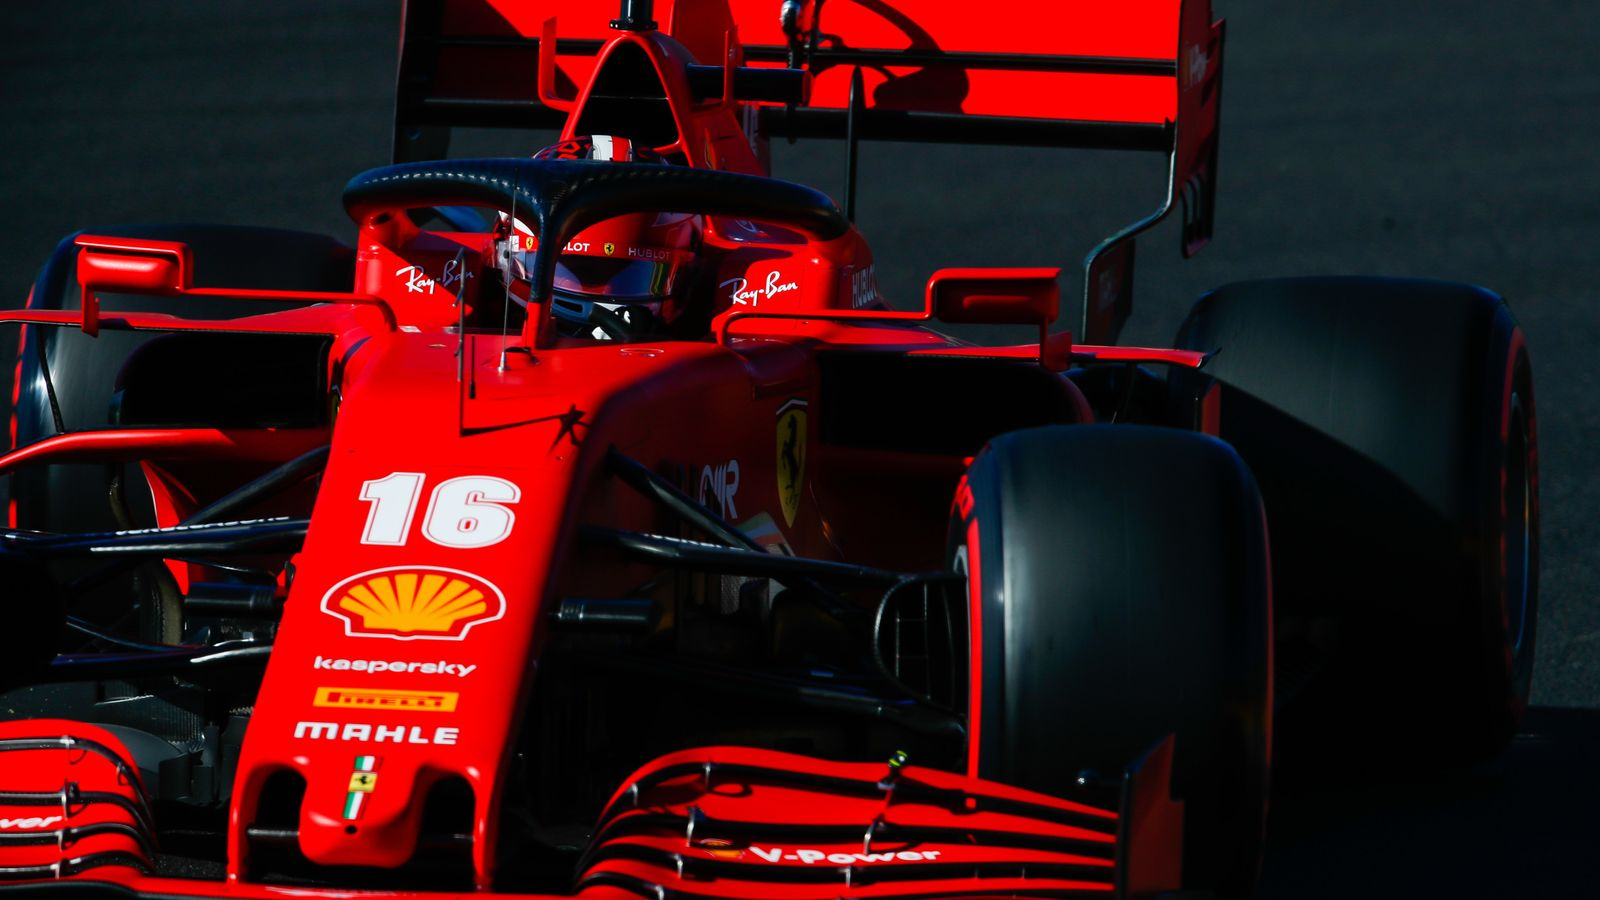 F1: Charles Leclerc stars again in qualifying but Sebastian Vettel 15th